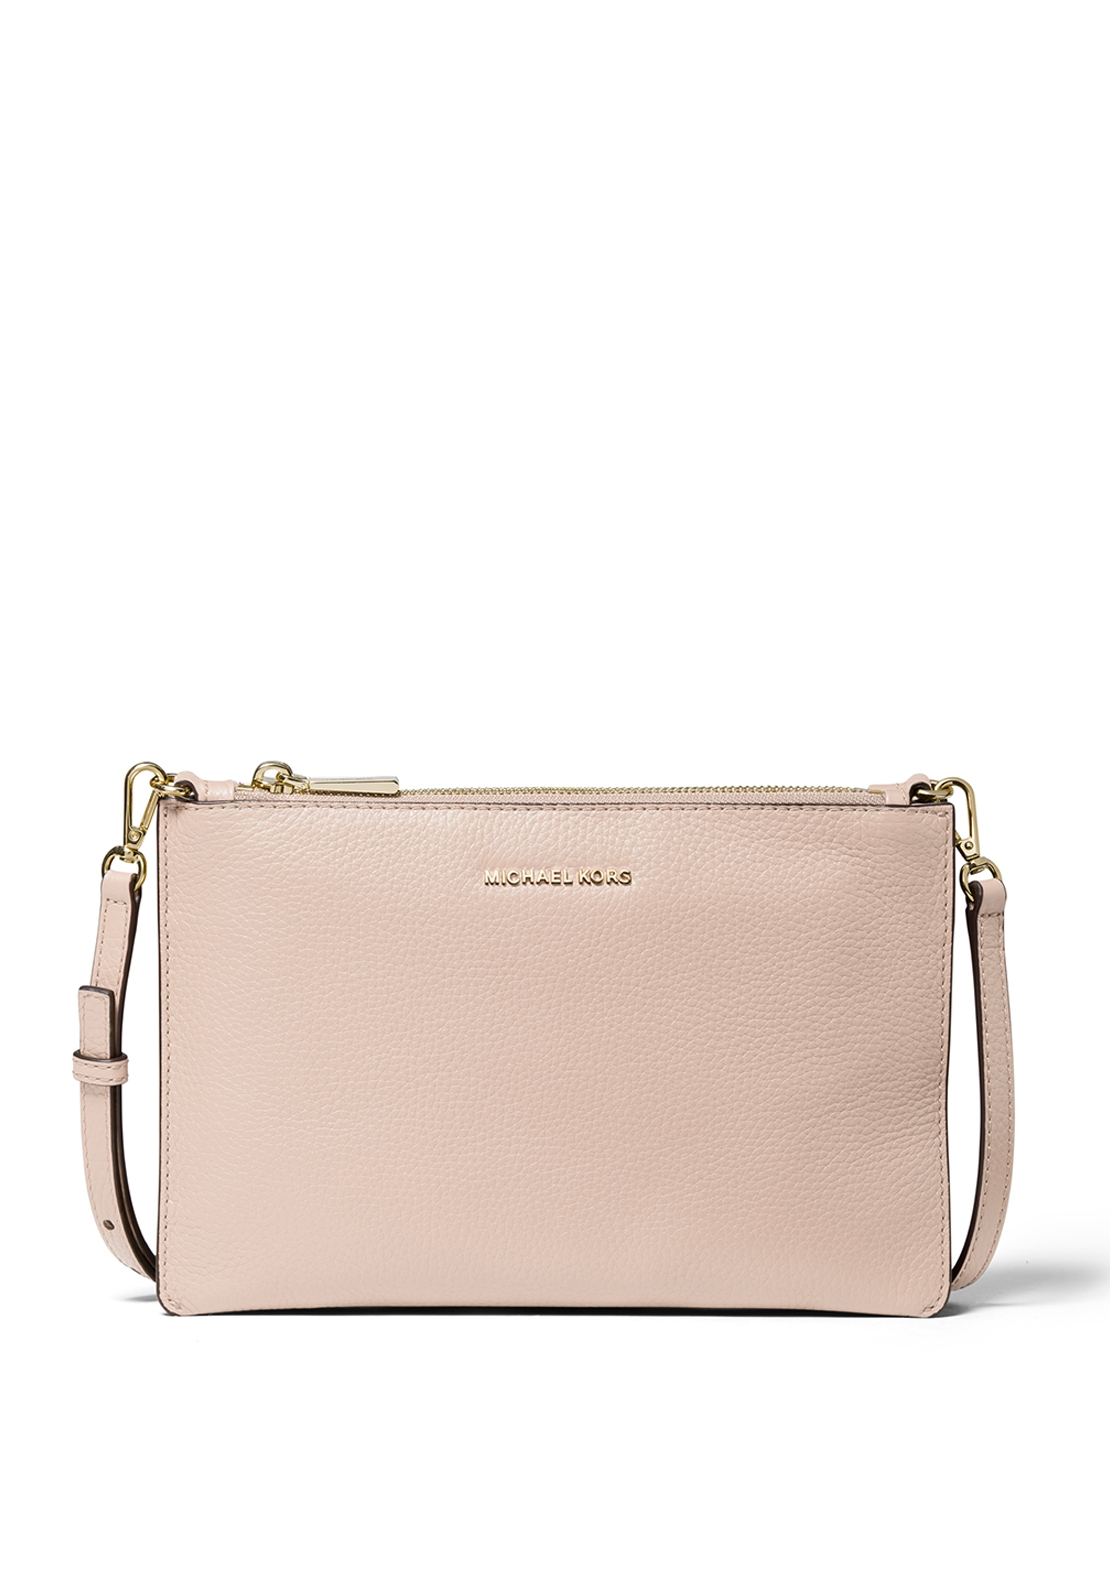 545f8a6cfd93 MICHAEL Michael Kors Double Pouch Leather Crossbody Bag, Soft Pink ...